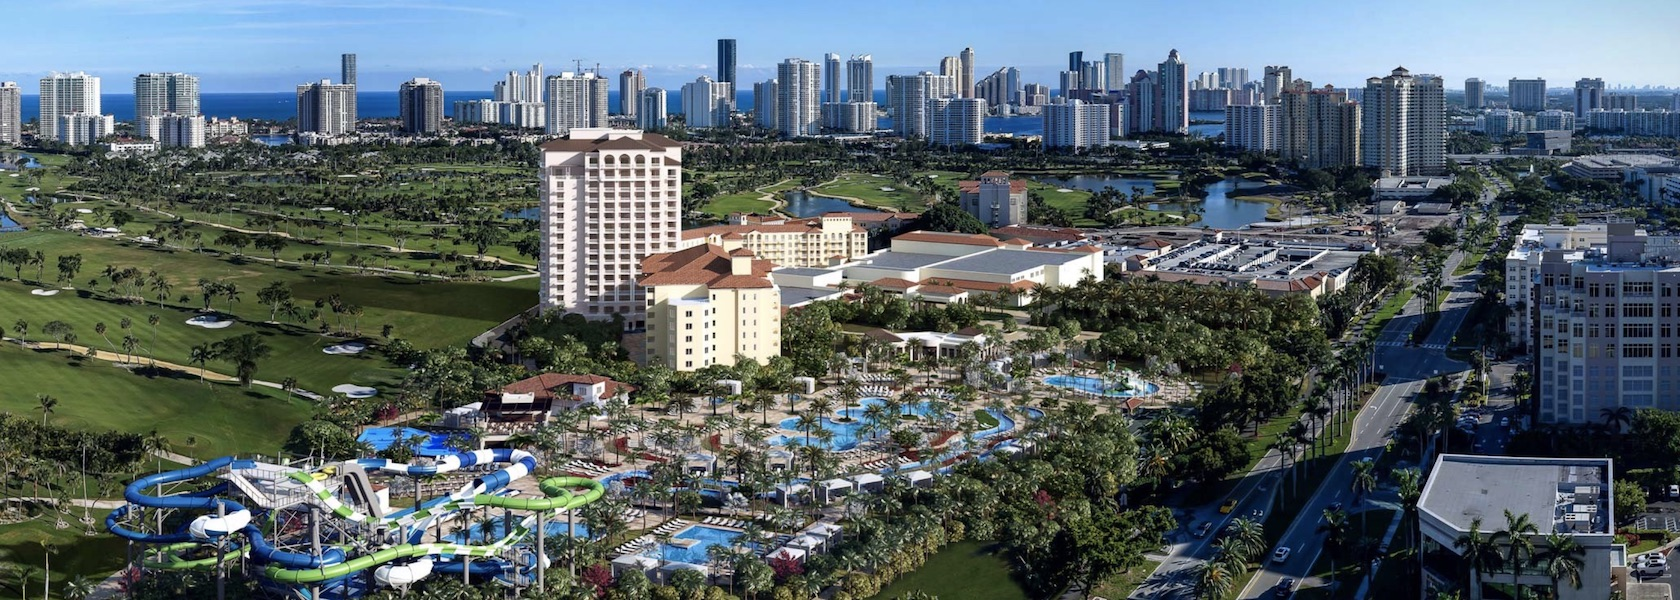 Aerial overview with city skyline in the background of the JW Marriott Turnberry Isle Miami